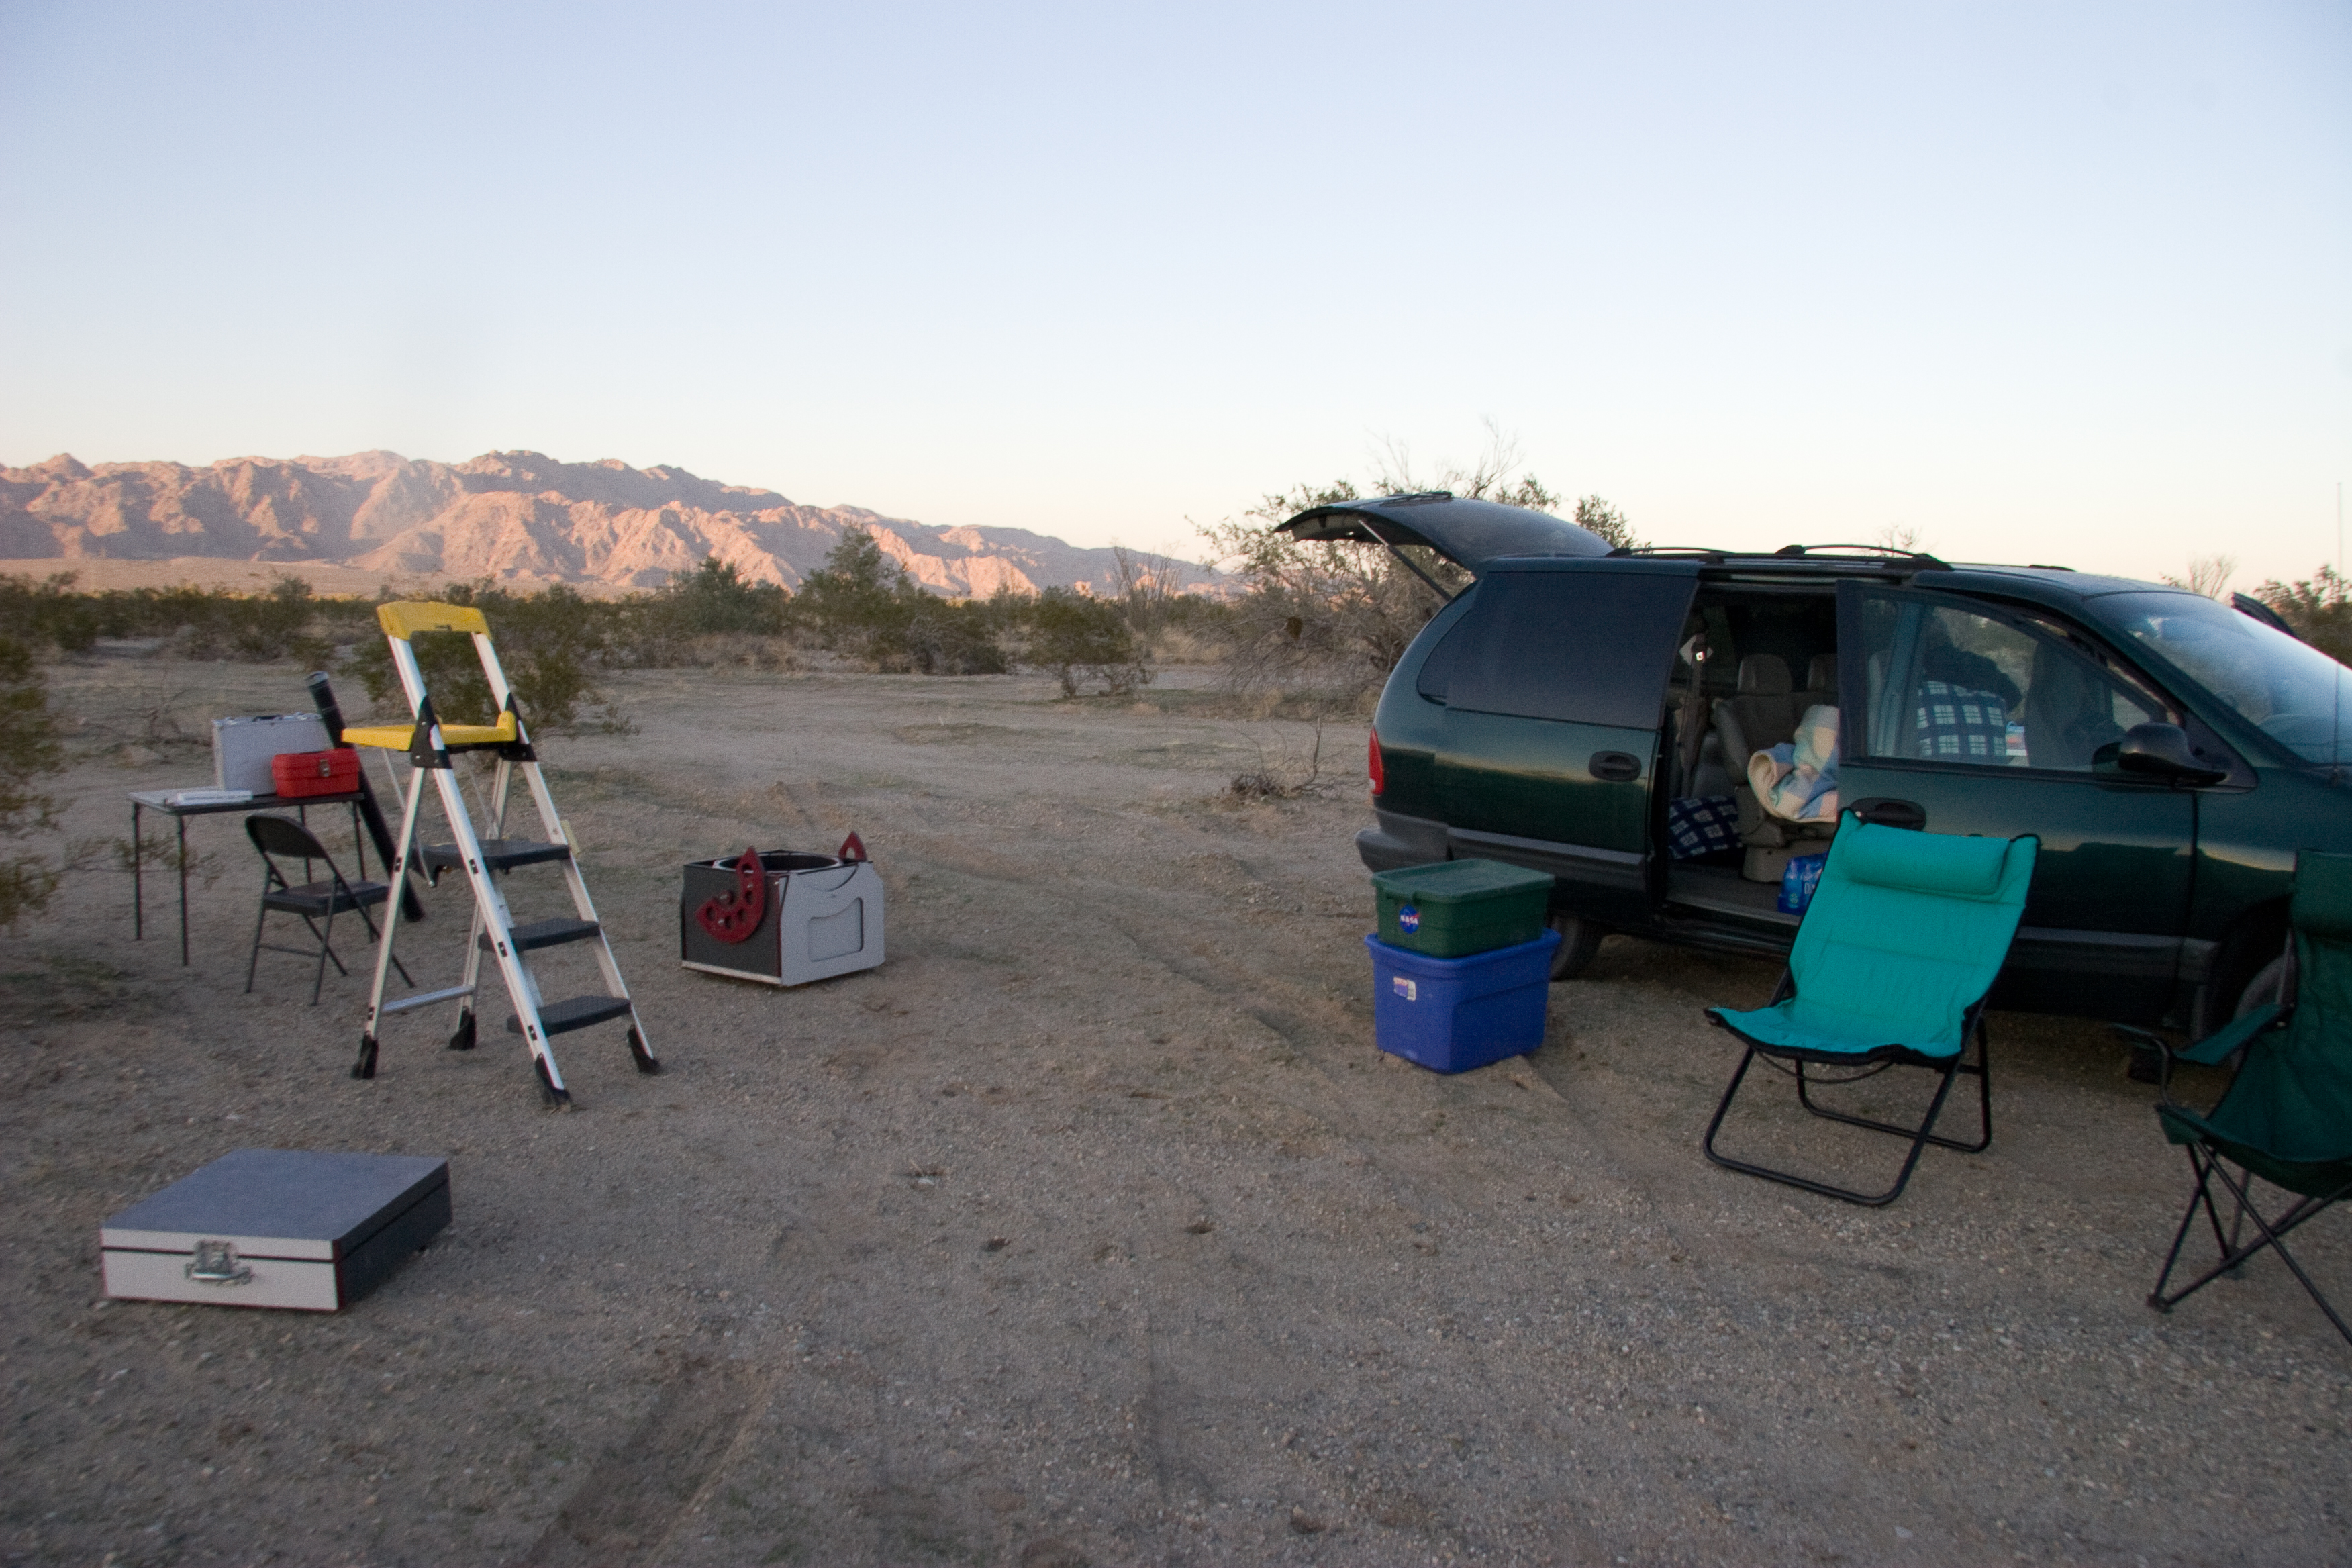 2011-01-29-chuckwalla-103.jpg - Lovely view of our site looking toward the north.